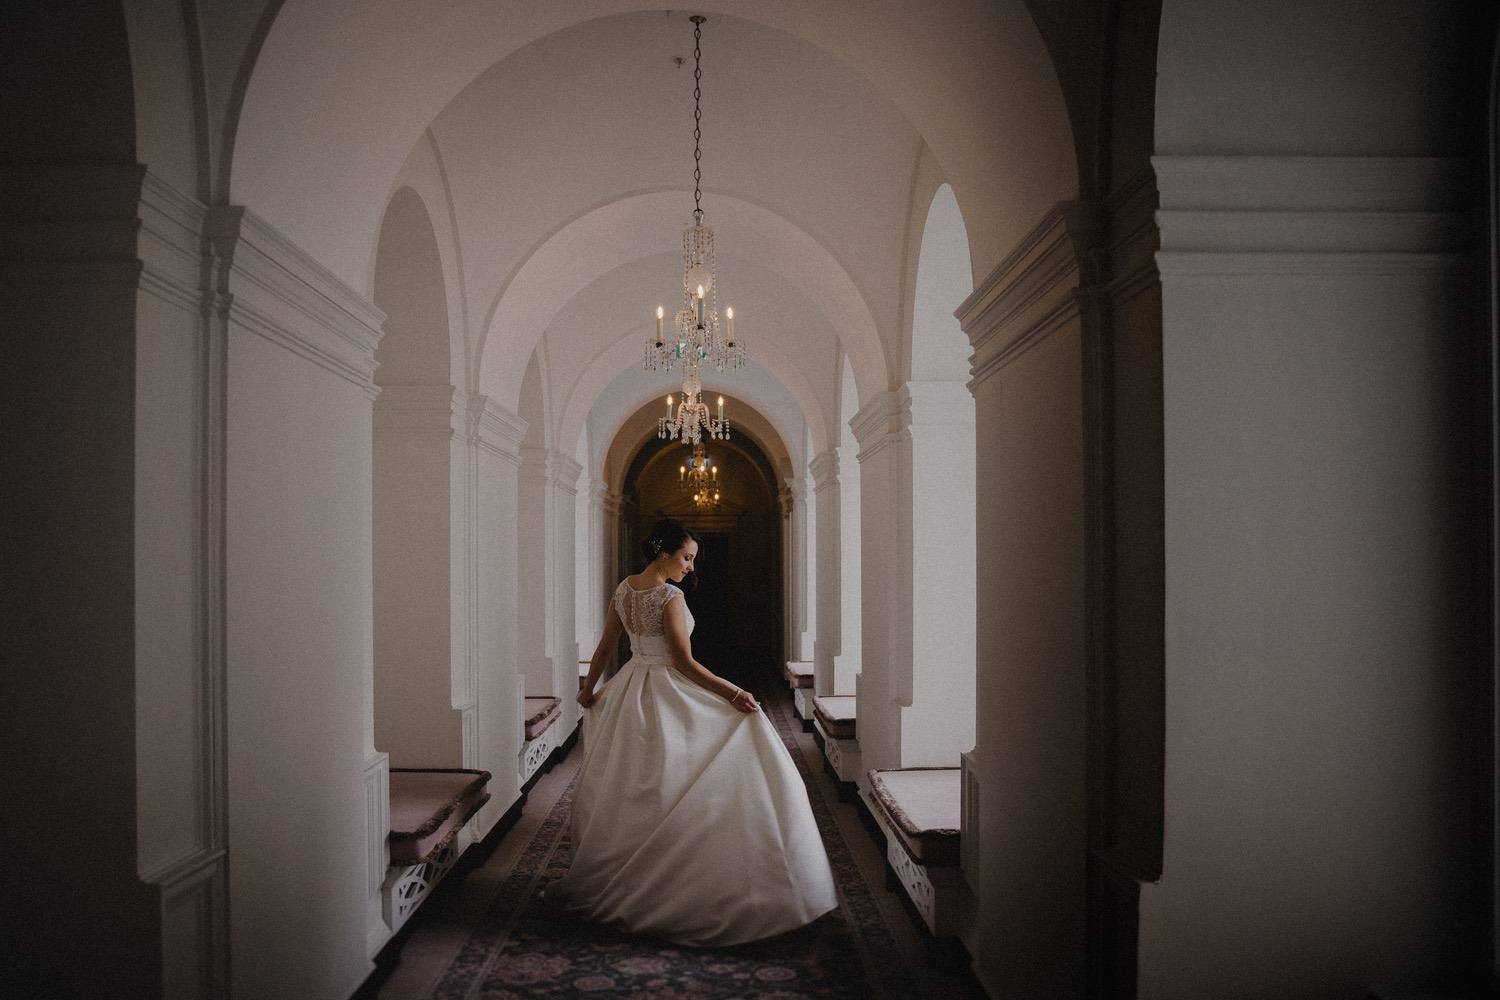 Antonia stepping into the light, fluffing the dress as she gets acquainted with her attire for the day. - The Ned, London.